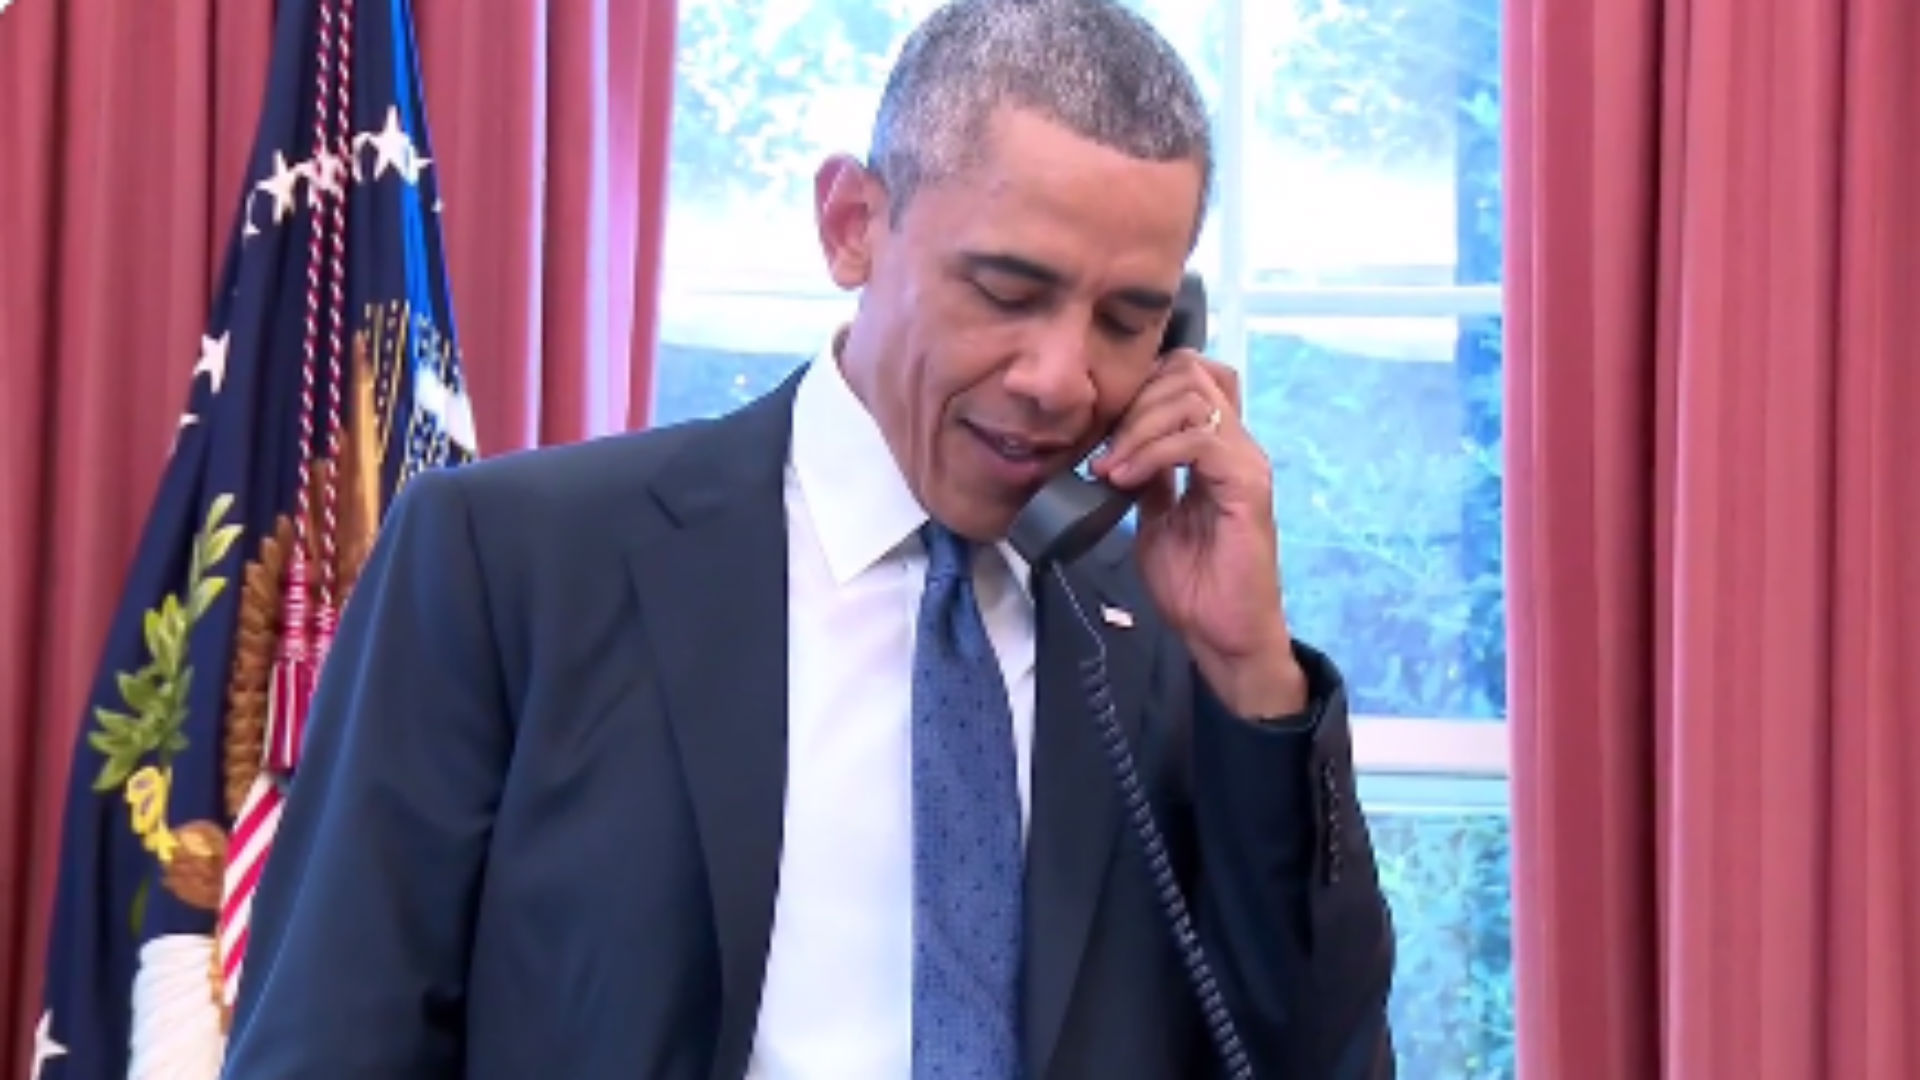 Listen in on Barack Obama's call to the U.S. Women's National Team after its World Cup win